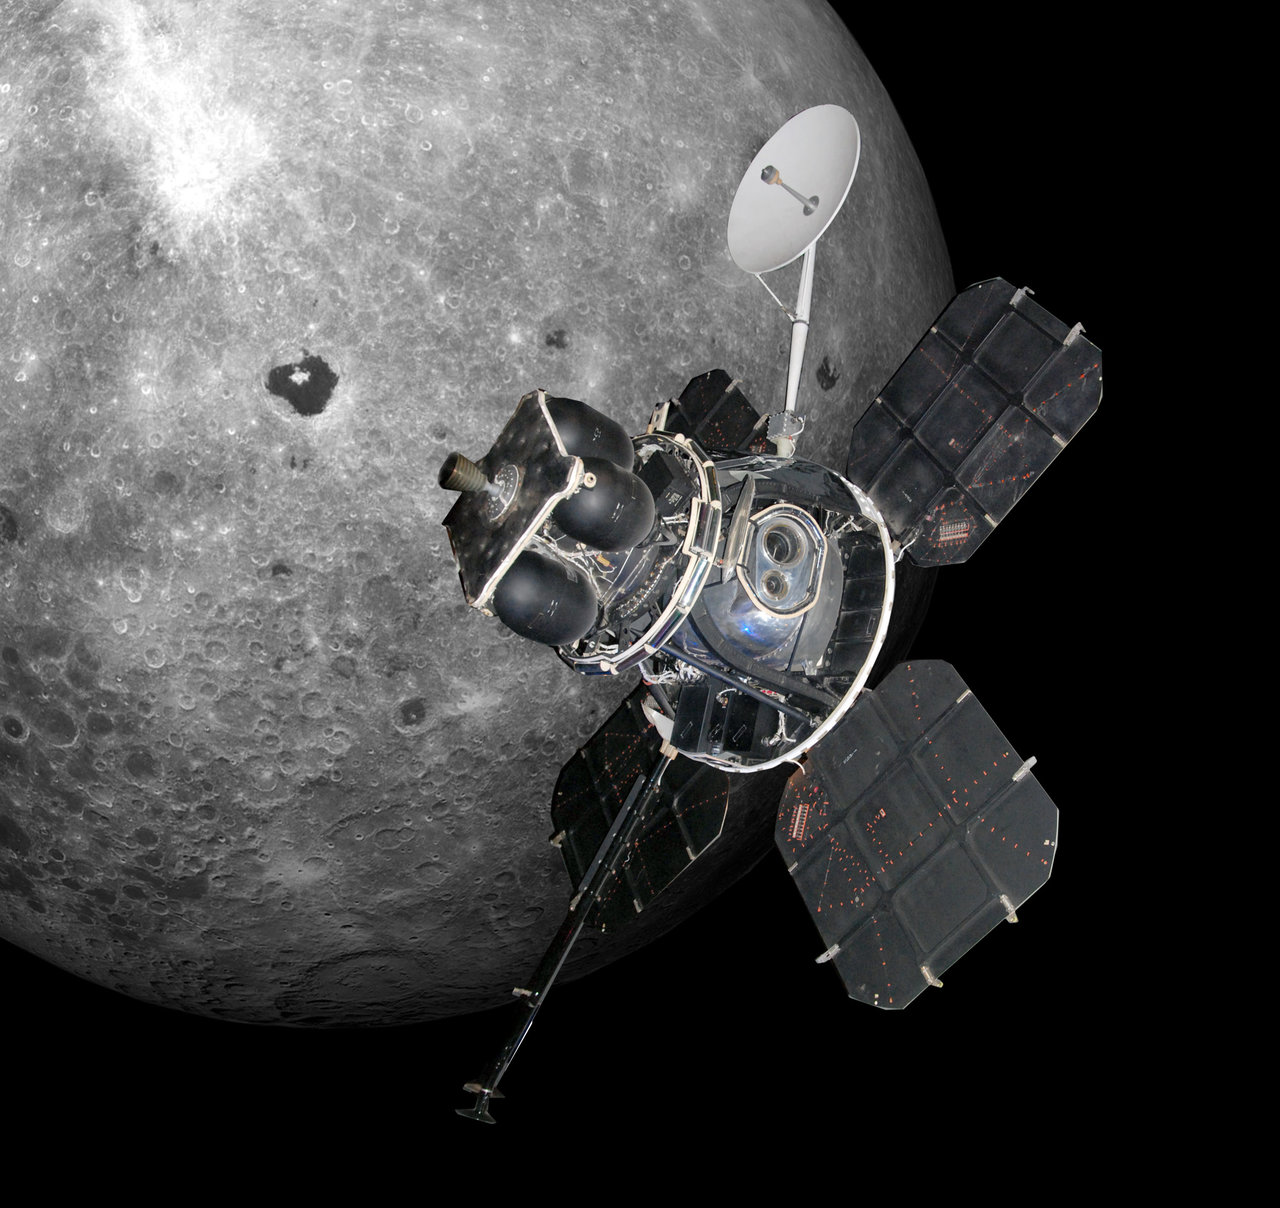 Spacecraft above Moon.